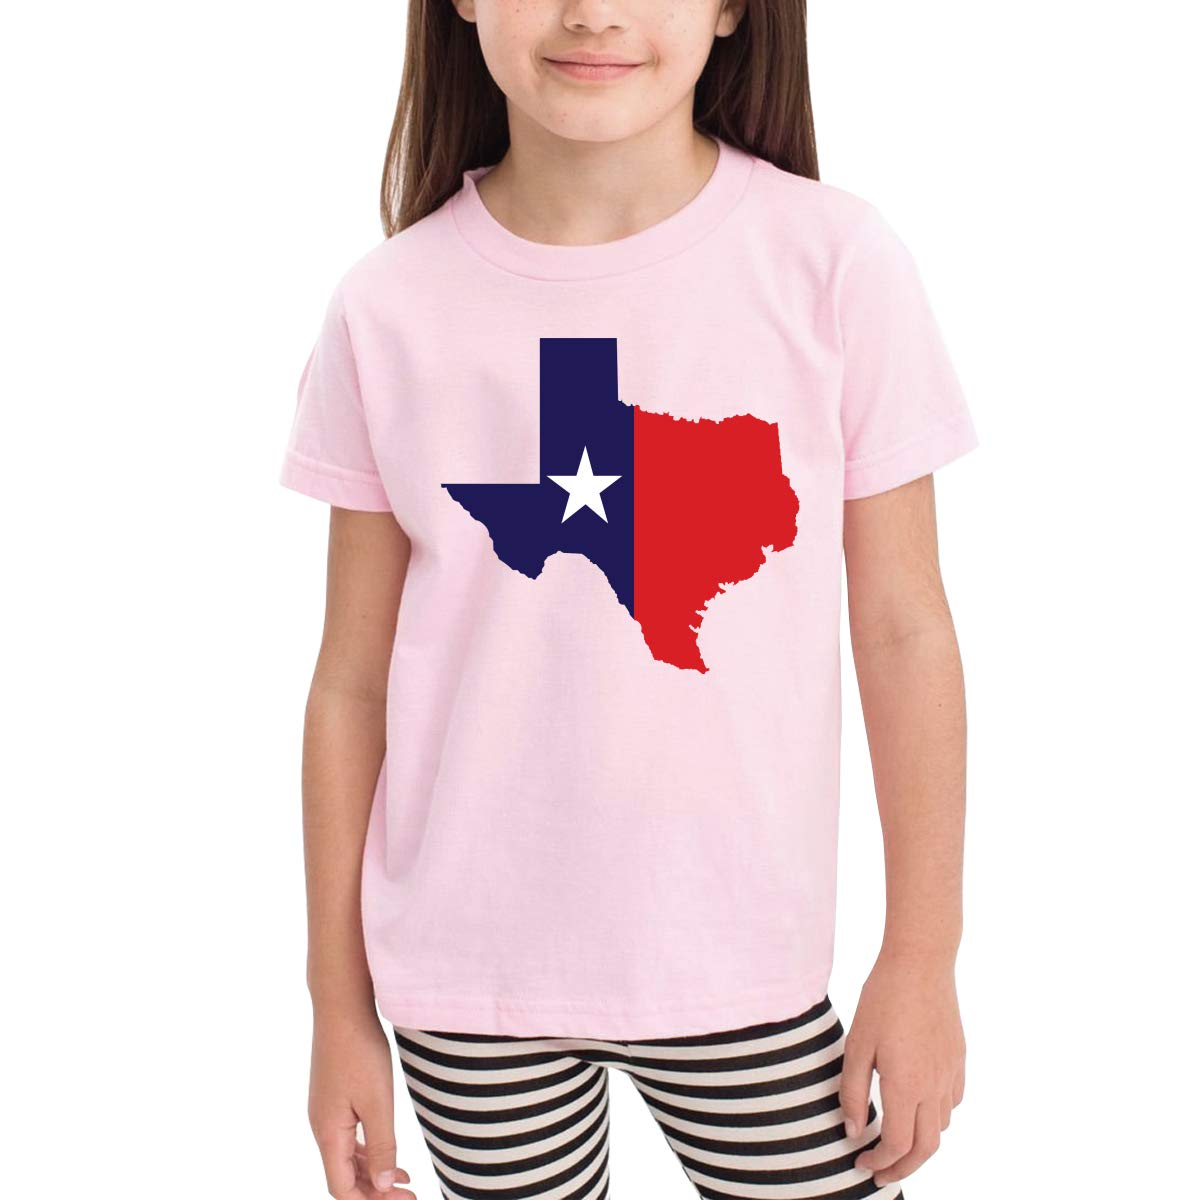 Onlybabycare Texas Flag Map 100/% Organic Cotton Toddler Baby Boys Girls Kids Short Sleeve T Shirt Top Tee Clothes 2-6 T